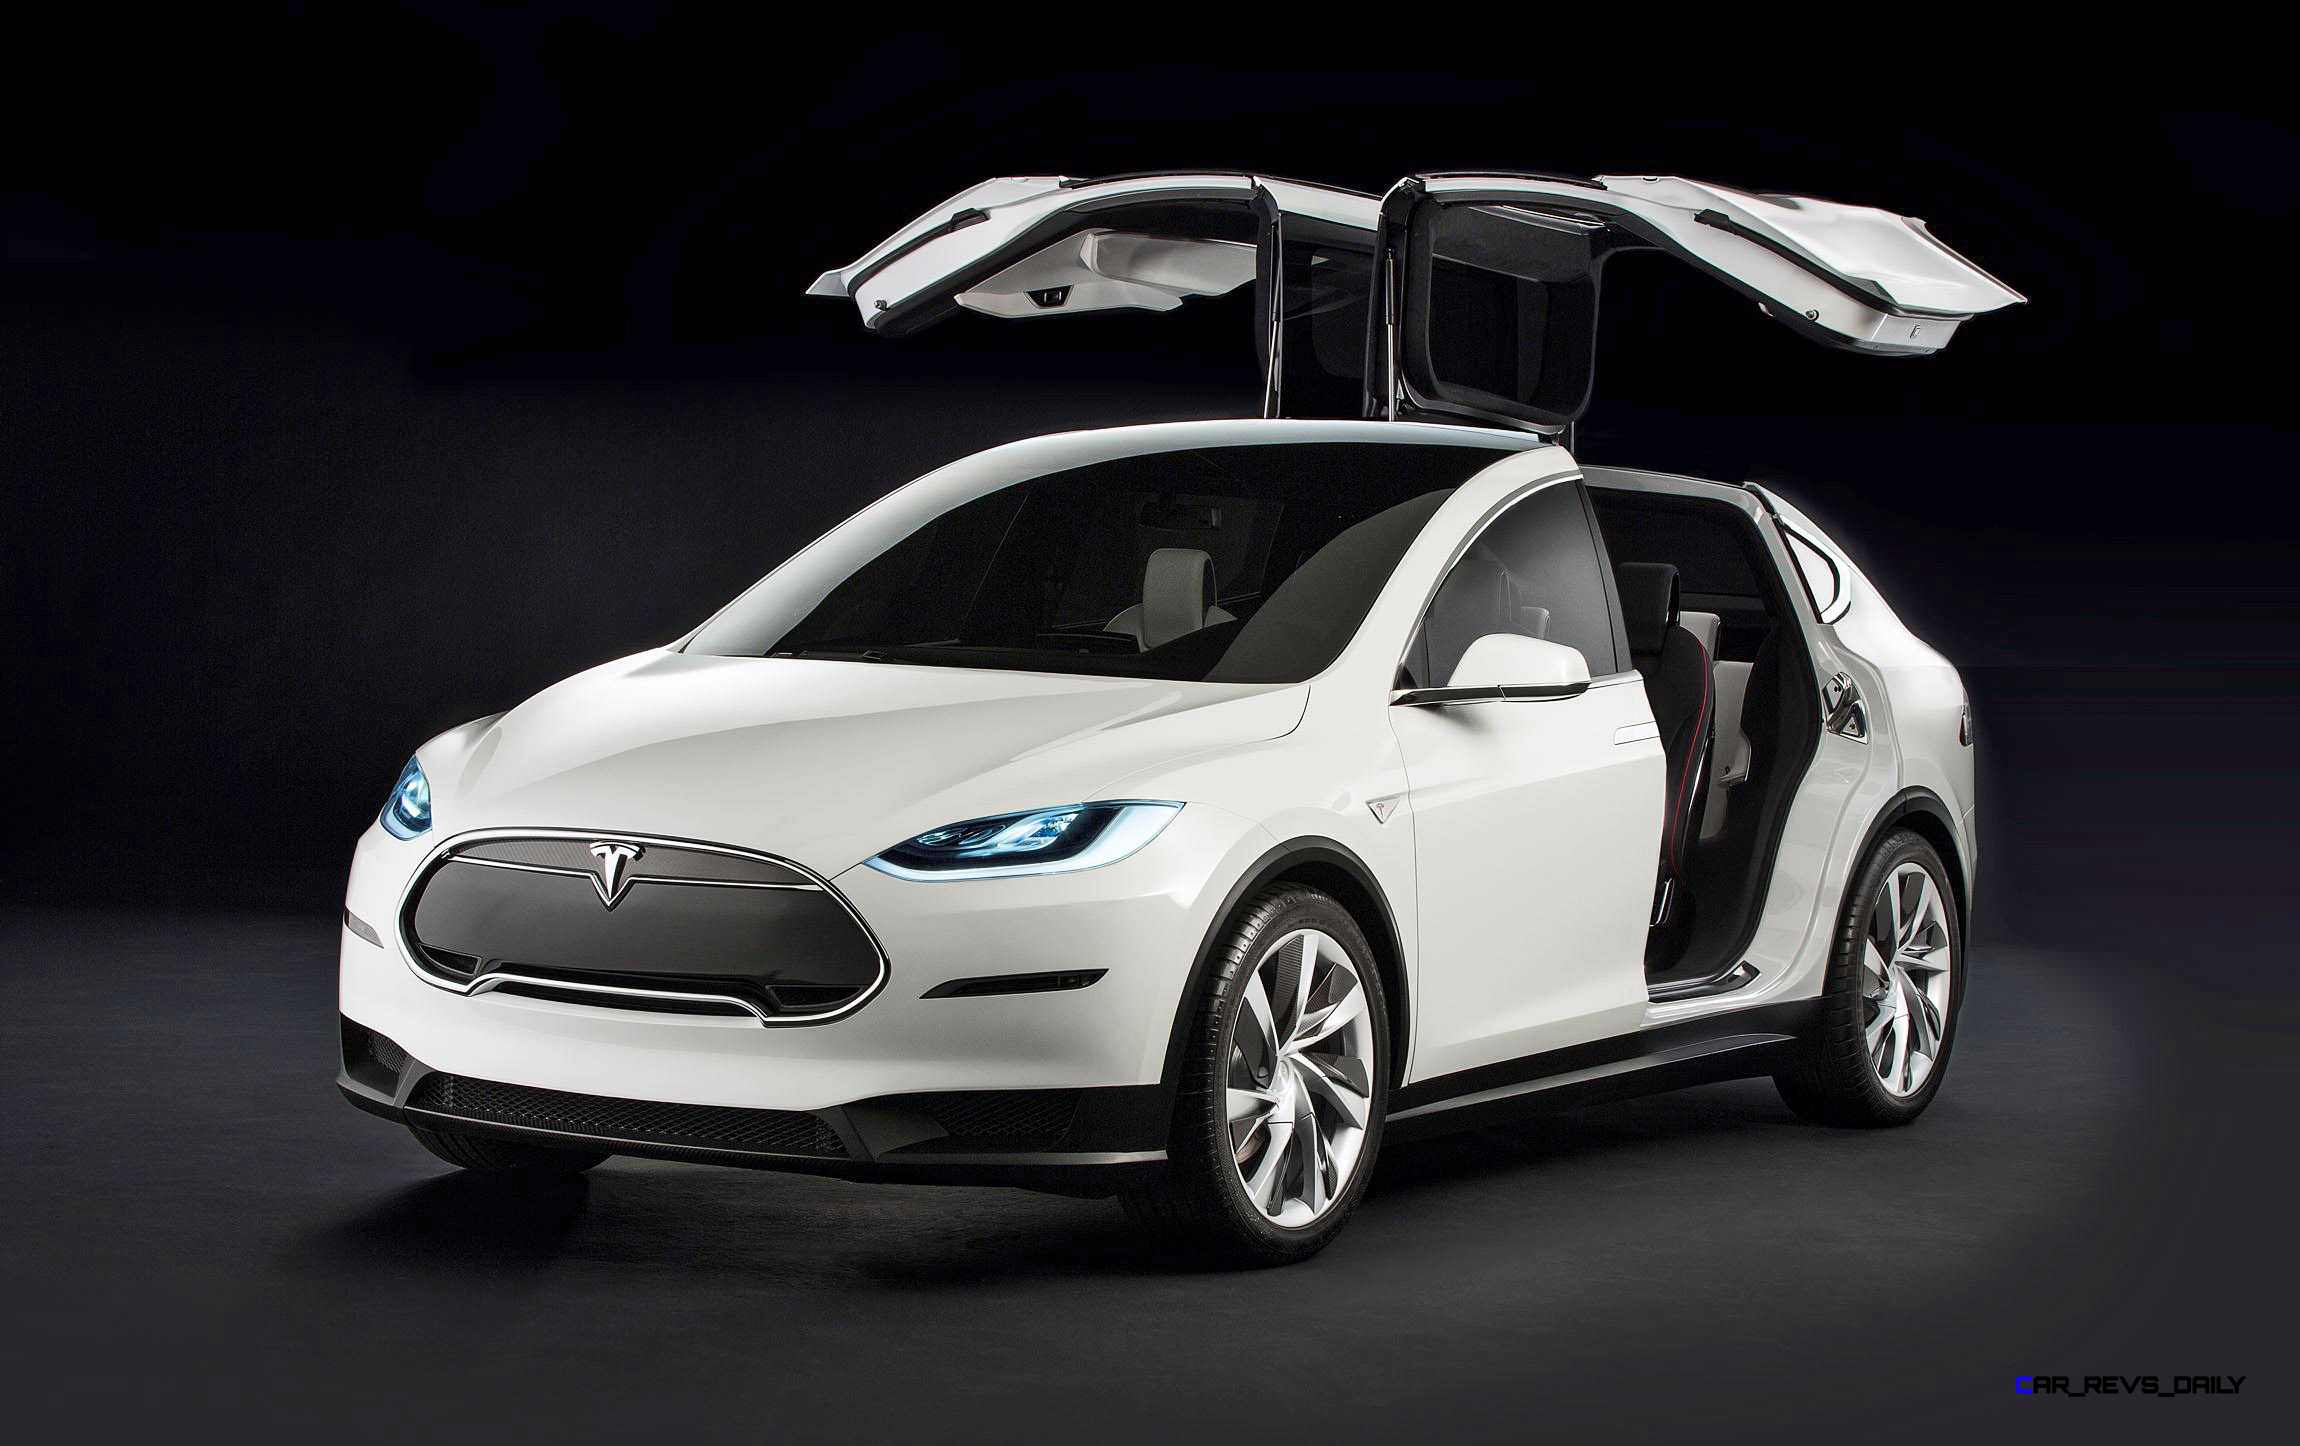 2016 tesla model x 8. Black Bedroom Furniture Sets. Home Design Ideas